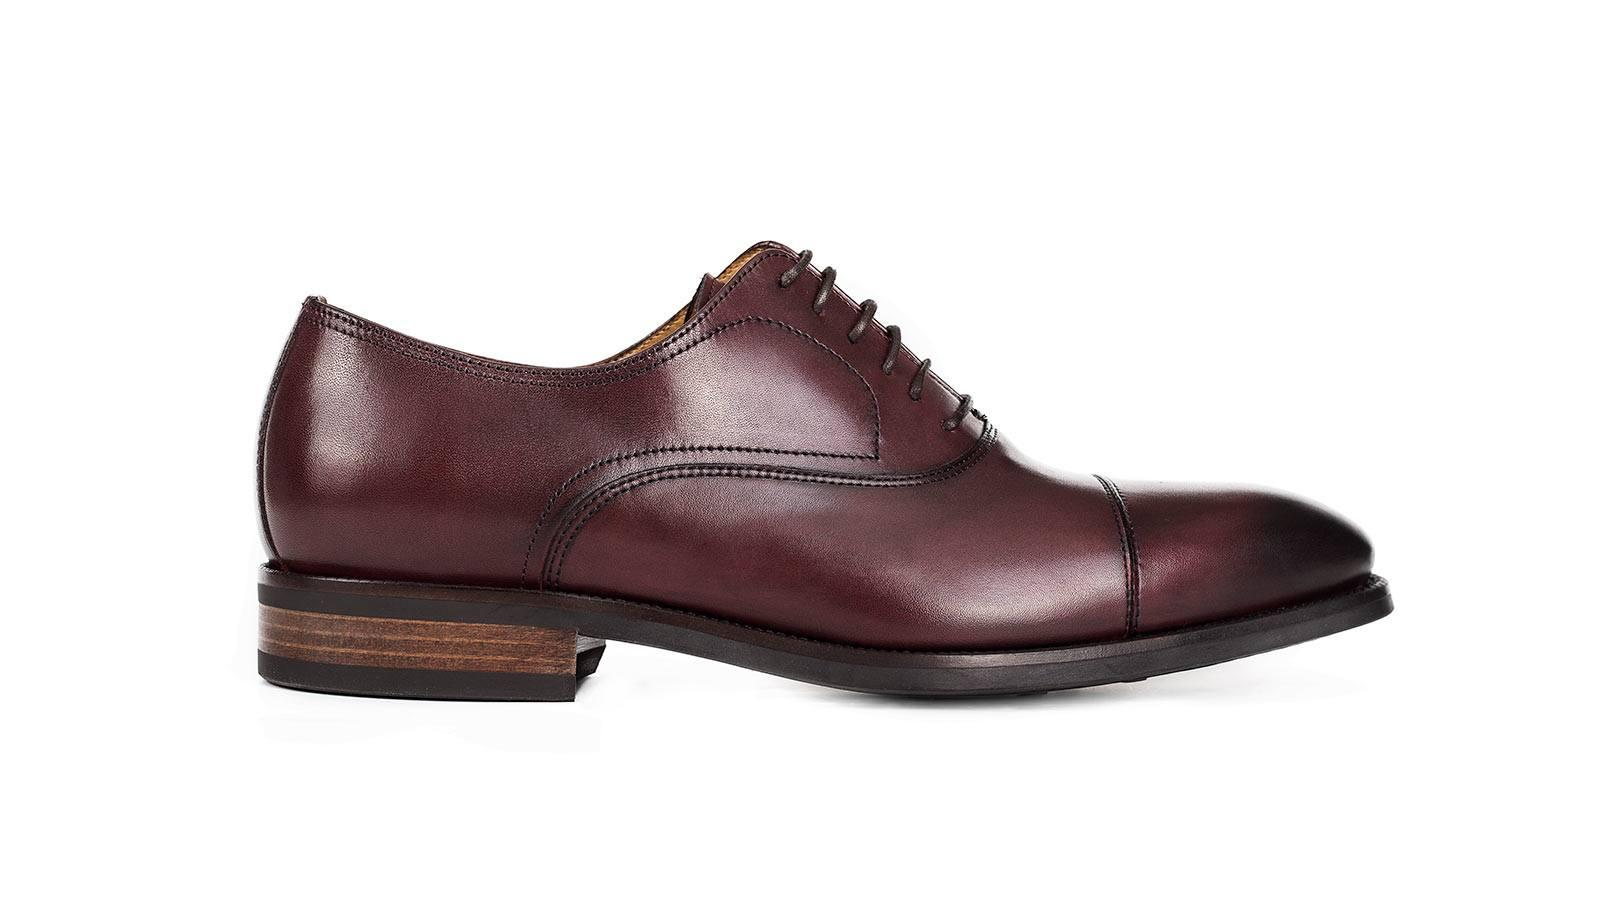 Burgundy Cap-Toe Oxford with a Rubber Sole - slider image 1